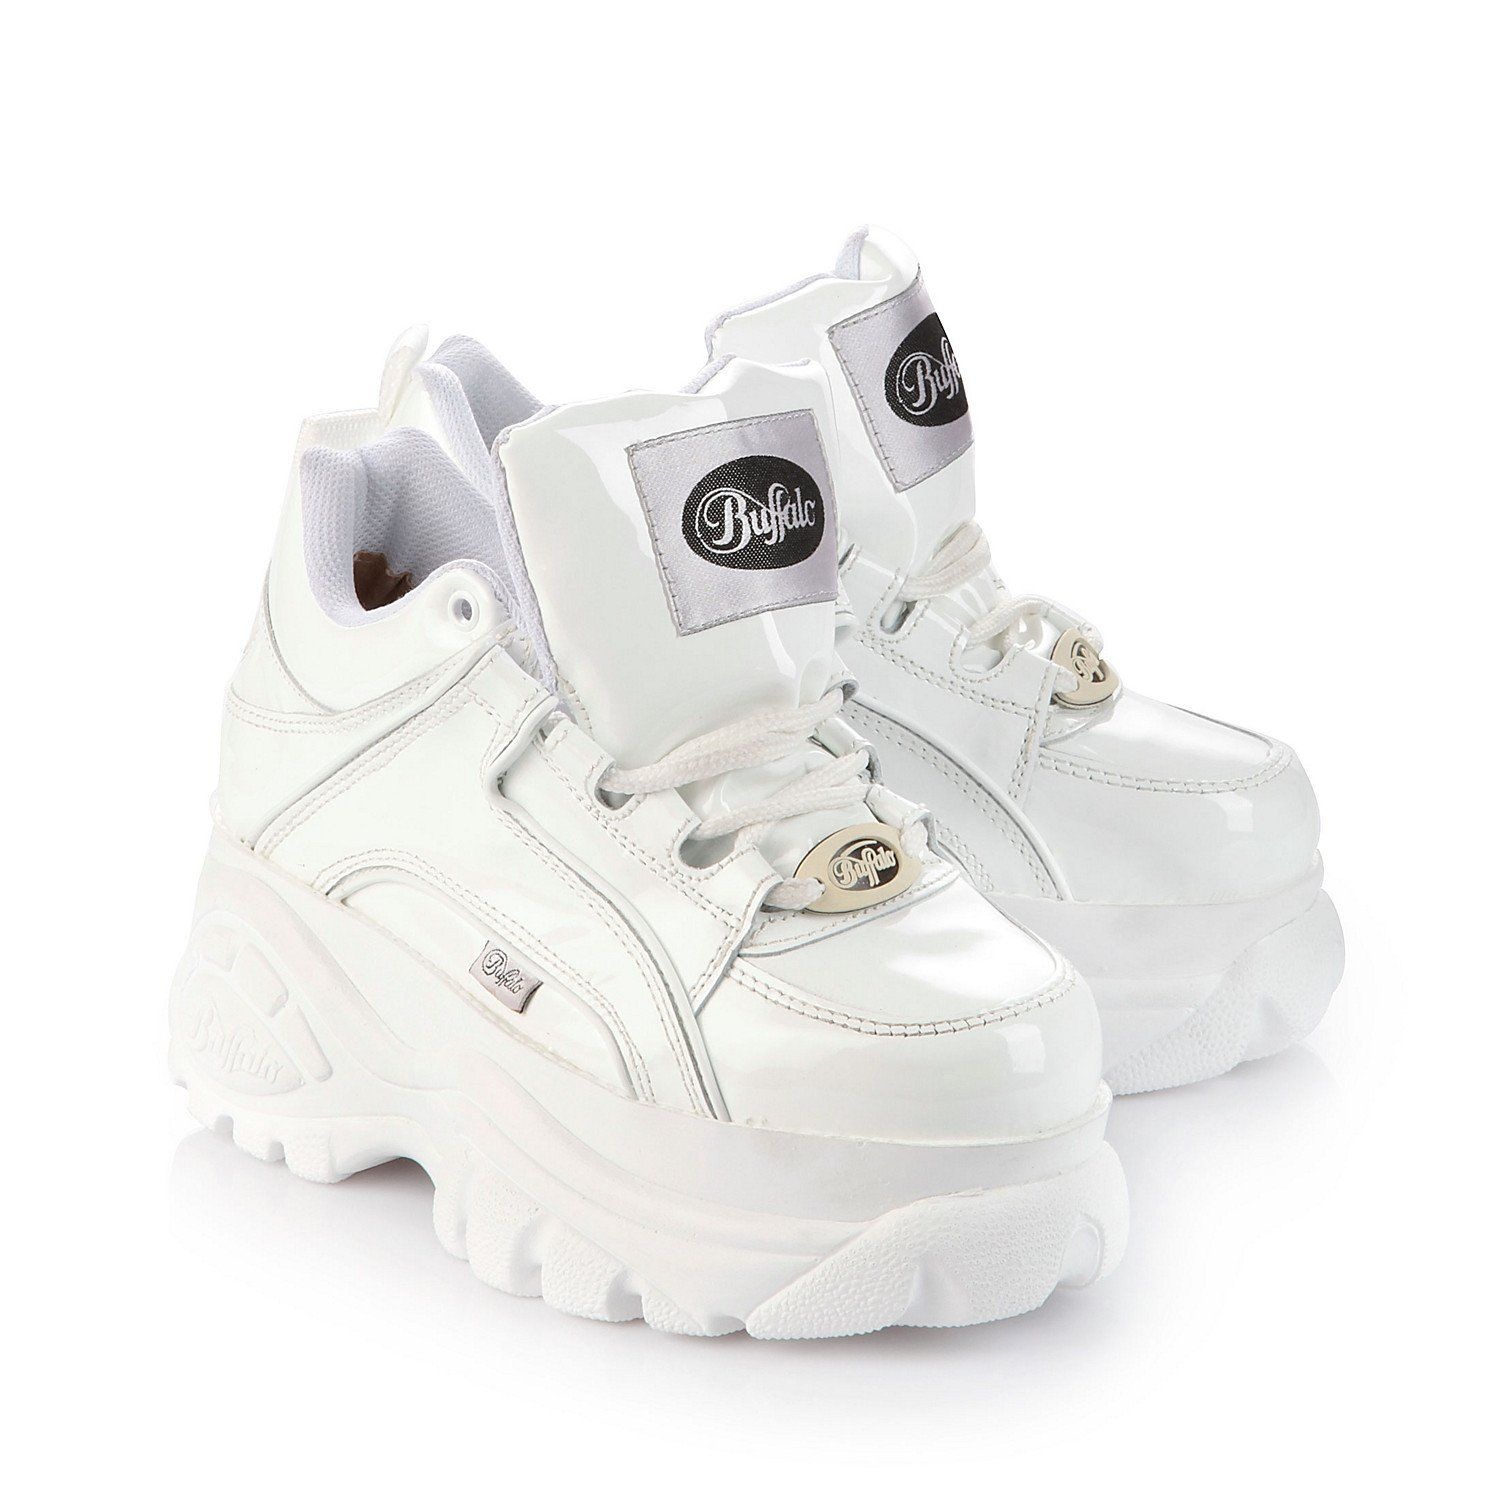 2d640401c1b New Buffalo Classic Boots 1339-14 WHITE Platform Shoes Trainers Sizes UK  3-8  Amazon.co.uk  Shoes   Bags